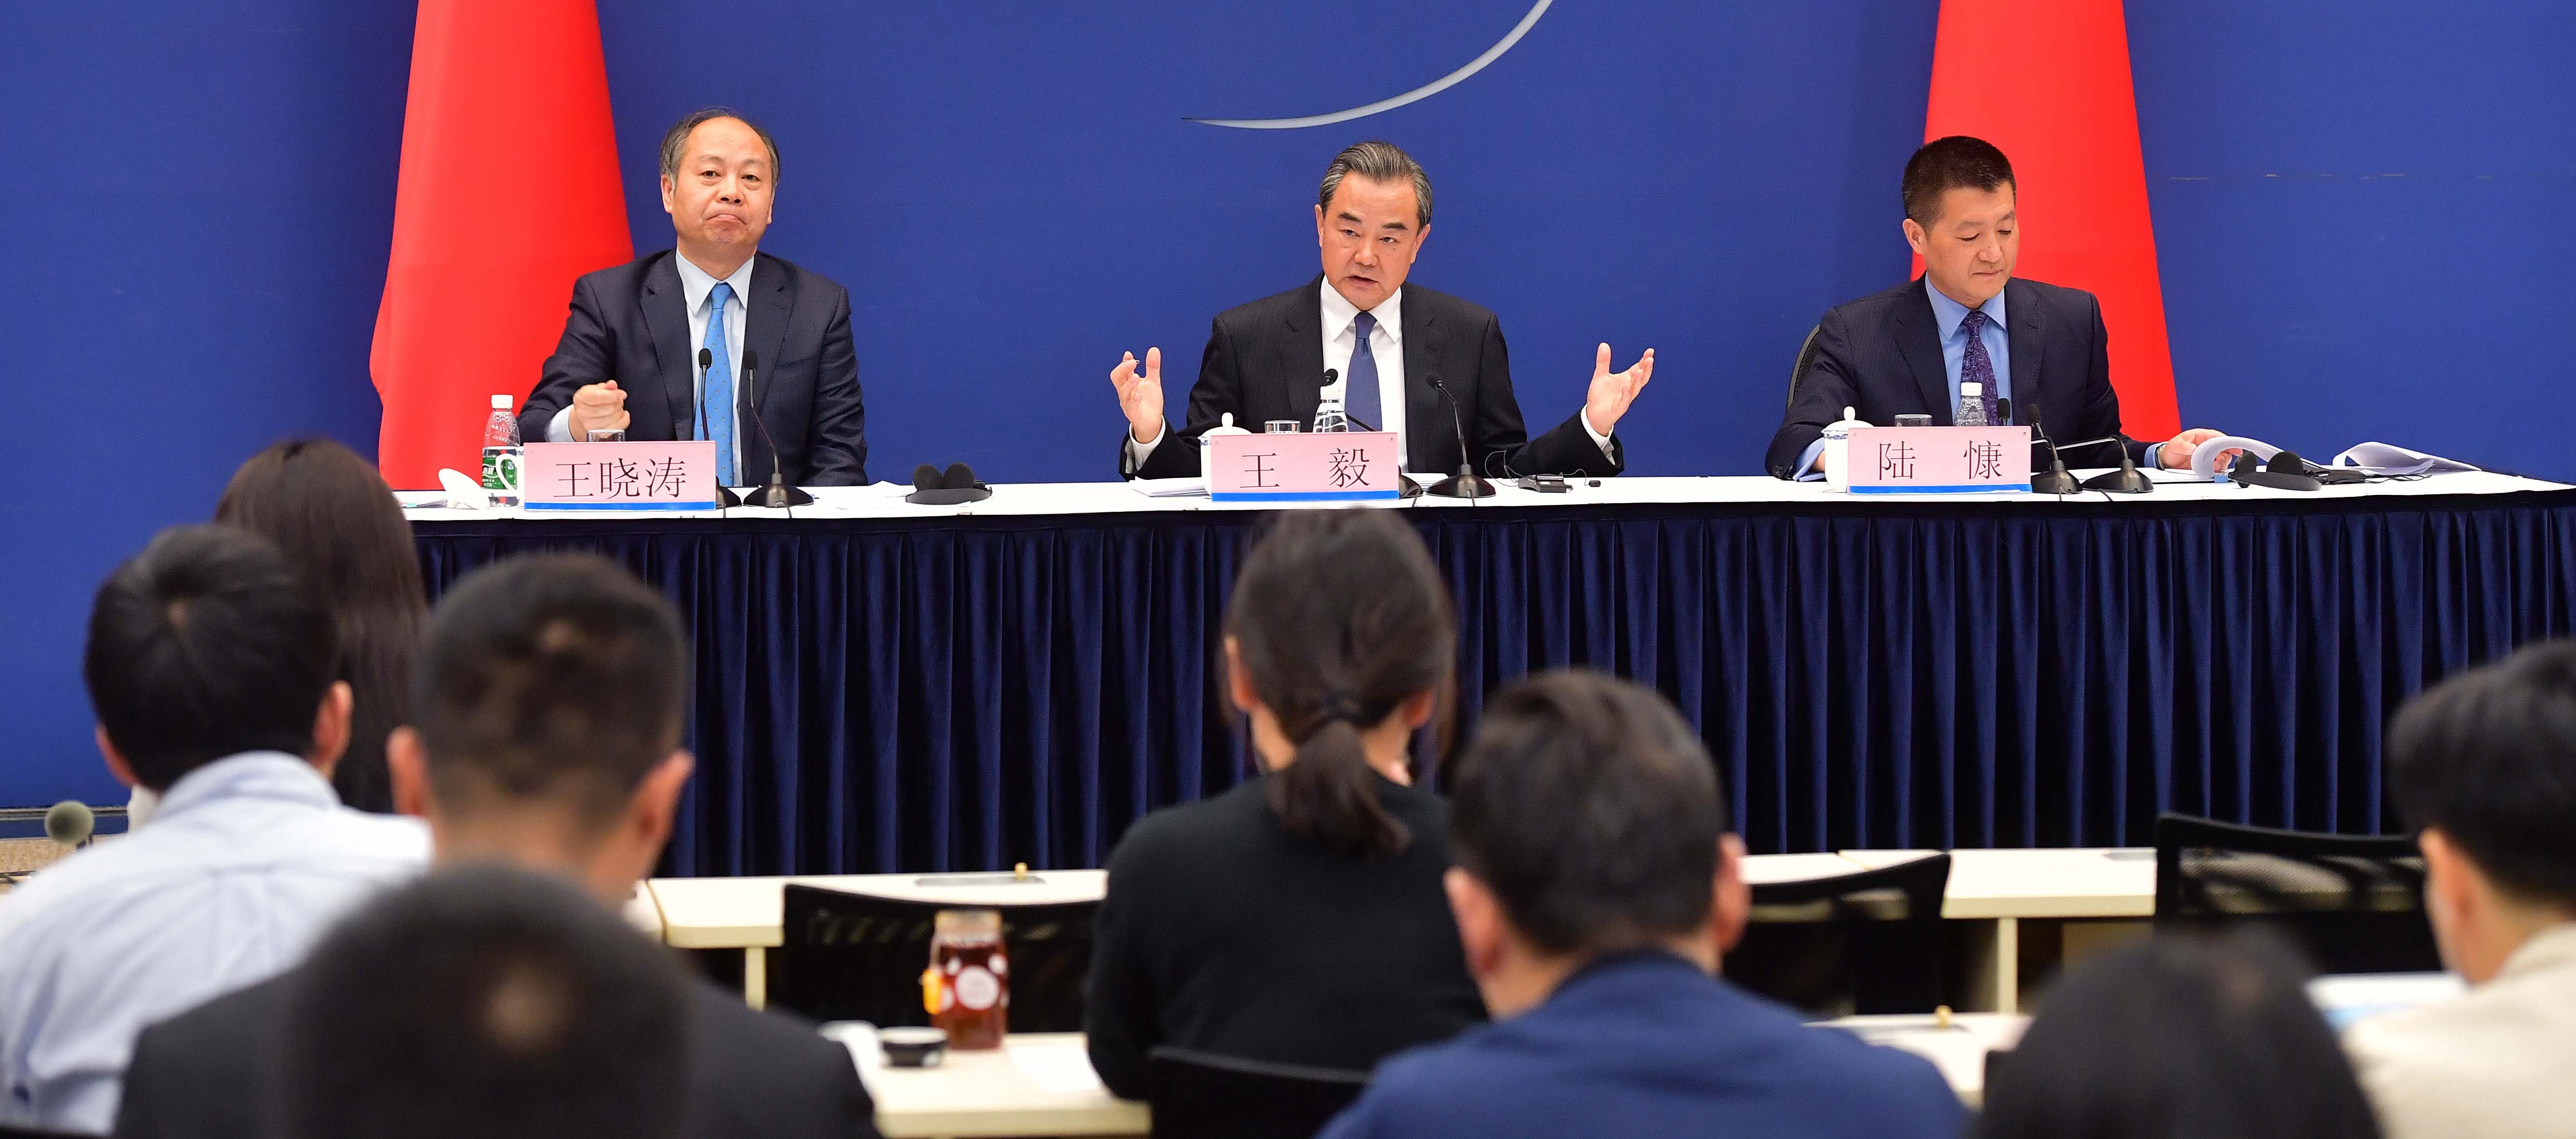 Wang Xiaotao and Wang Yi attend a press conference during The Belt and Road Forum in Beijing, April 2017. (Photo: VCG/Getty)